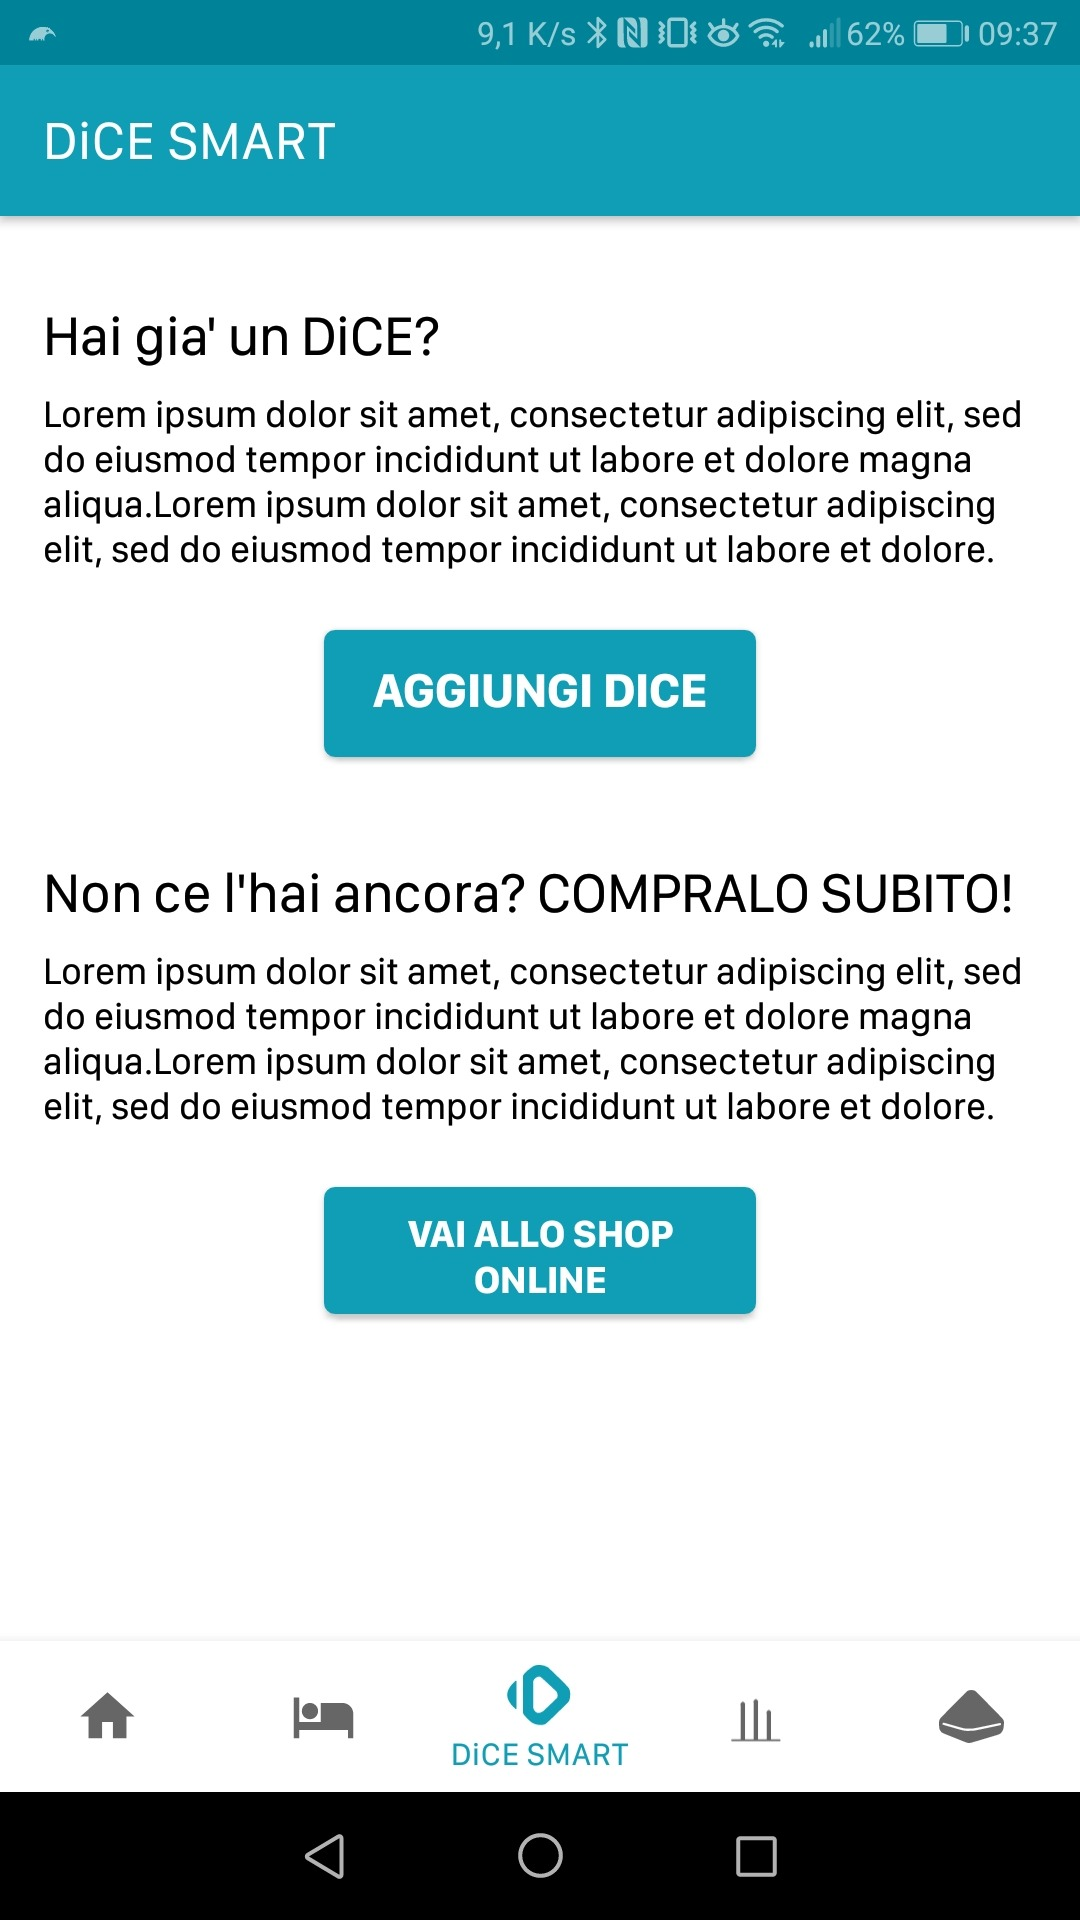 The DiCEhome app reports that the DiCE SMART is not connected